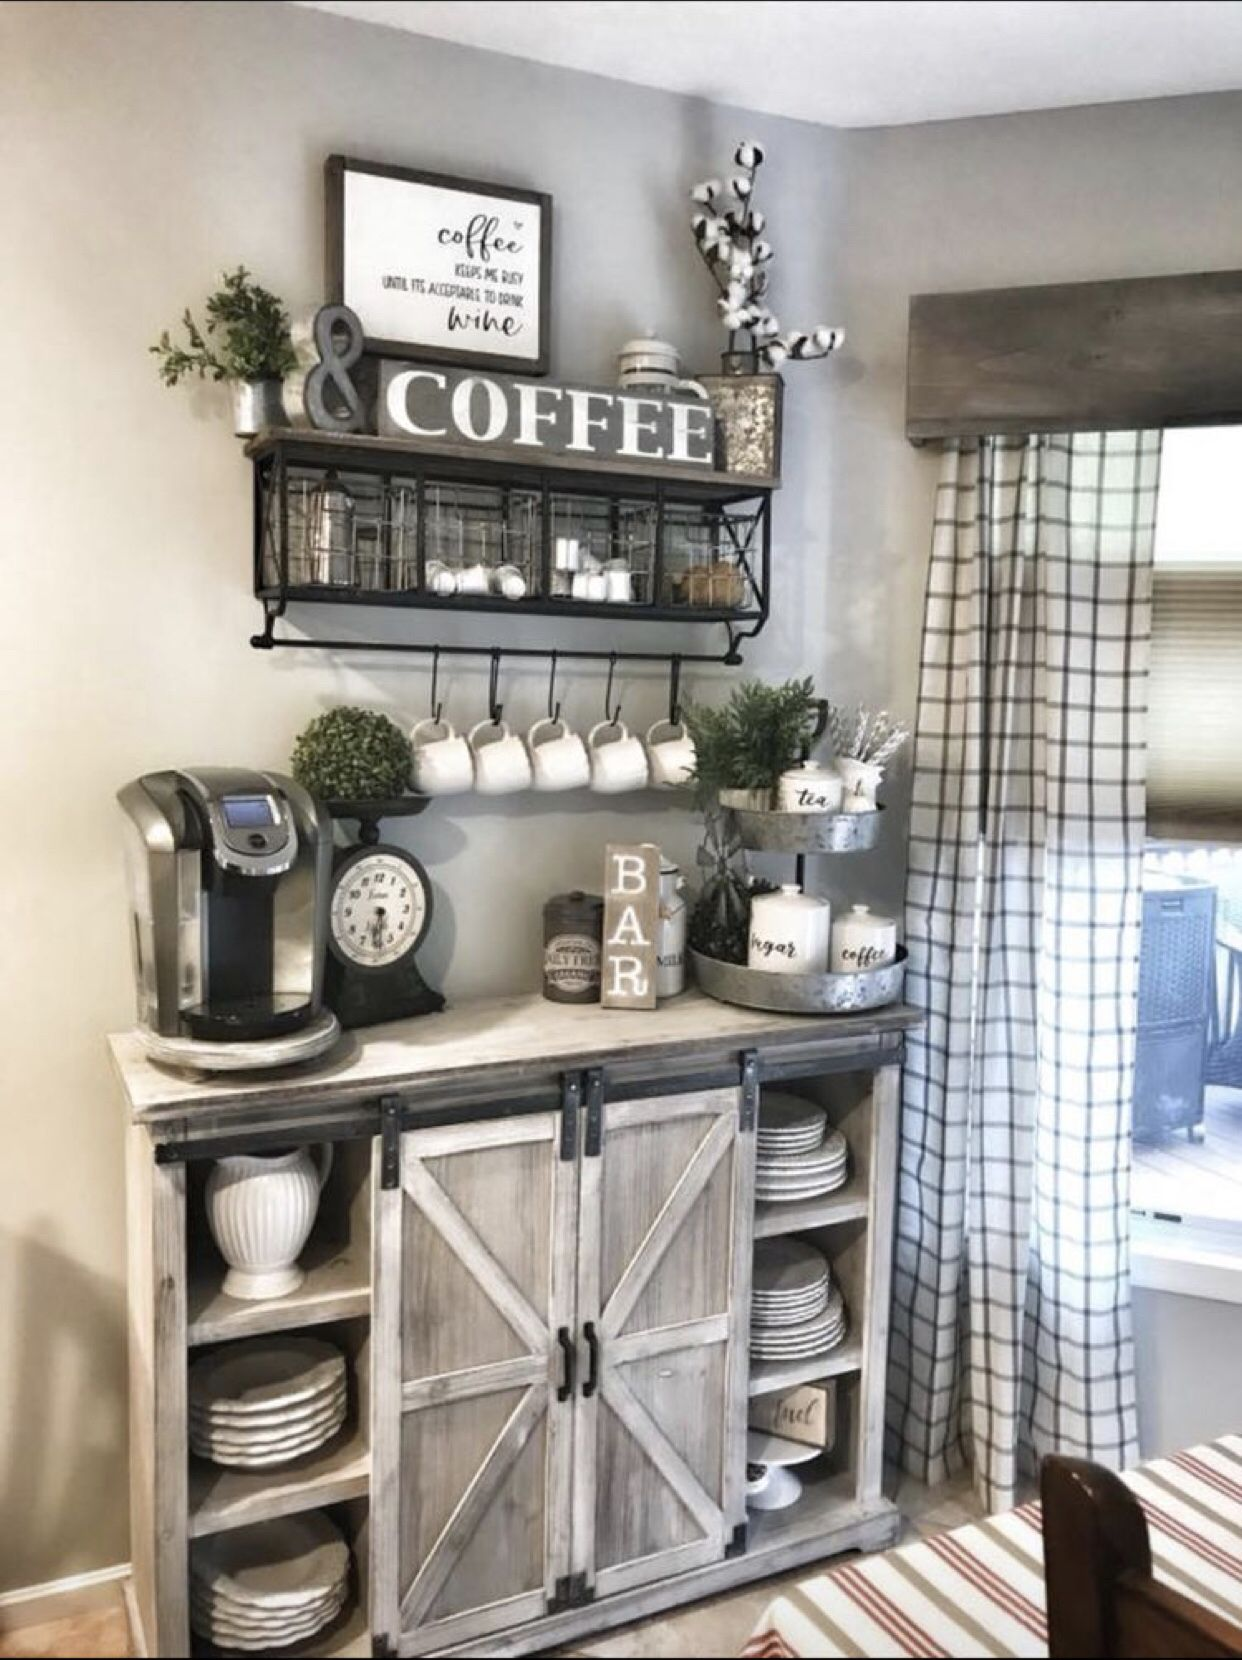 Pin By Jaymee Pelley On Coffee Bar Home In 2020 Coffee Bar Home Bars For Home Farm House Living Room